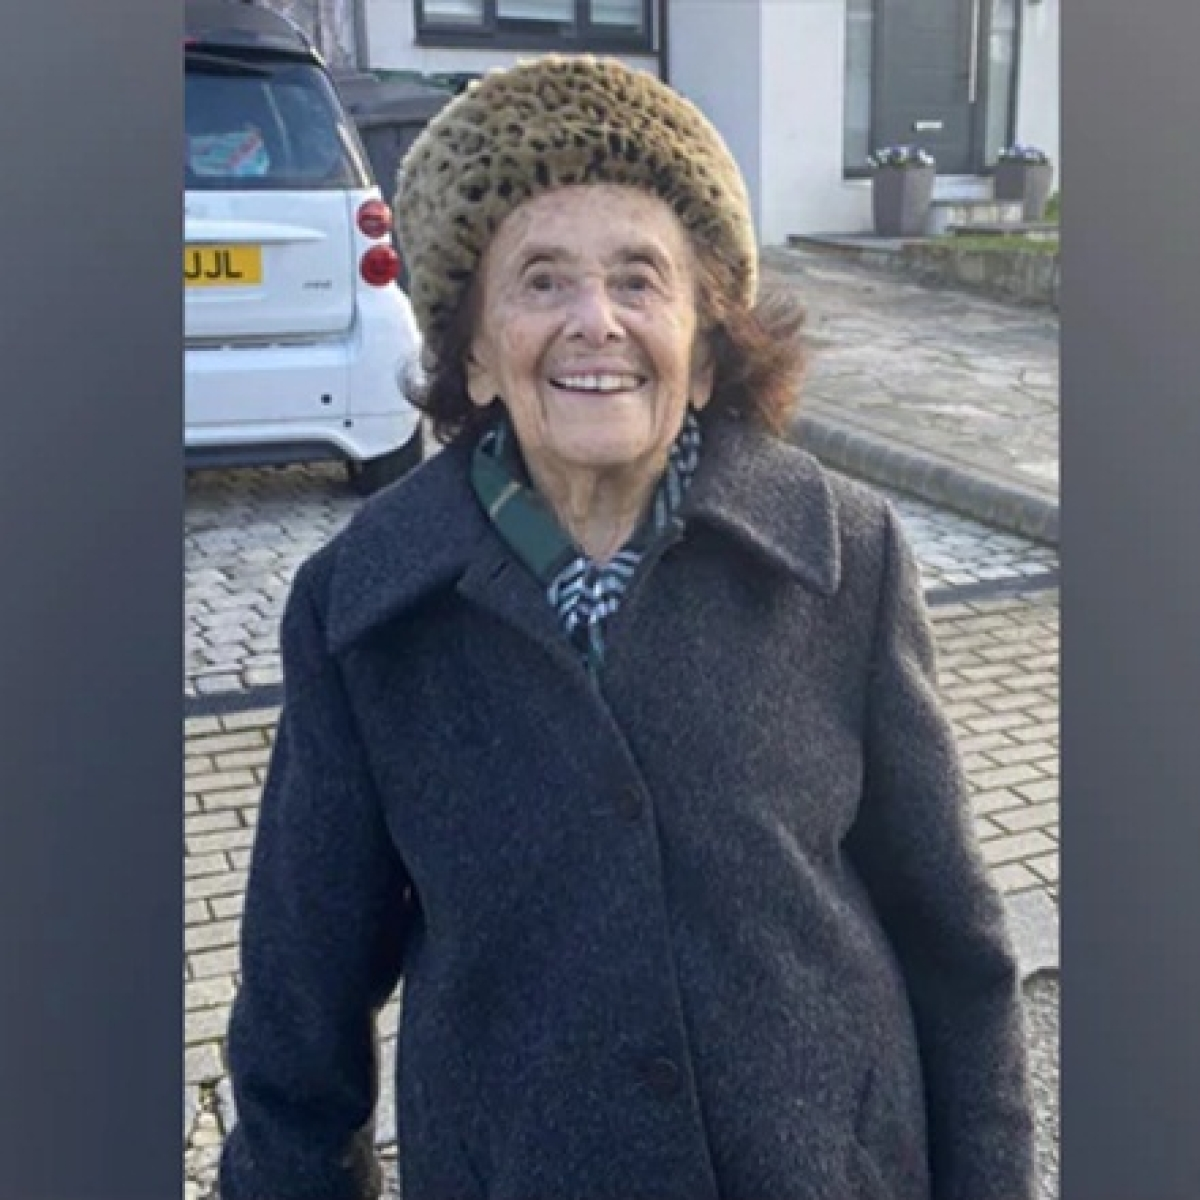 'What an inspiration': Twitterati react after 97-year-old holocaust survivor recovers from COVID-19